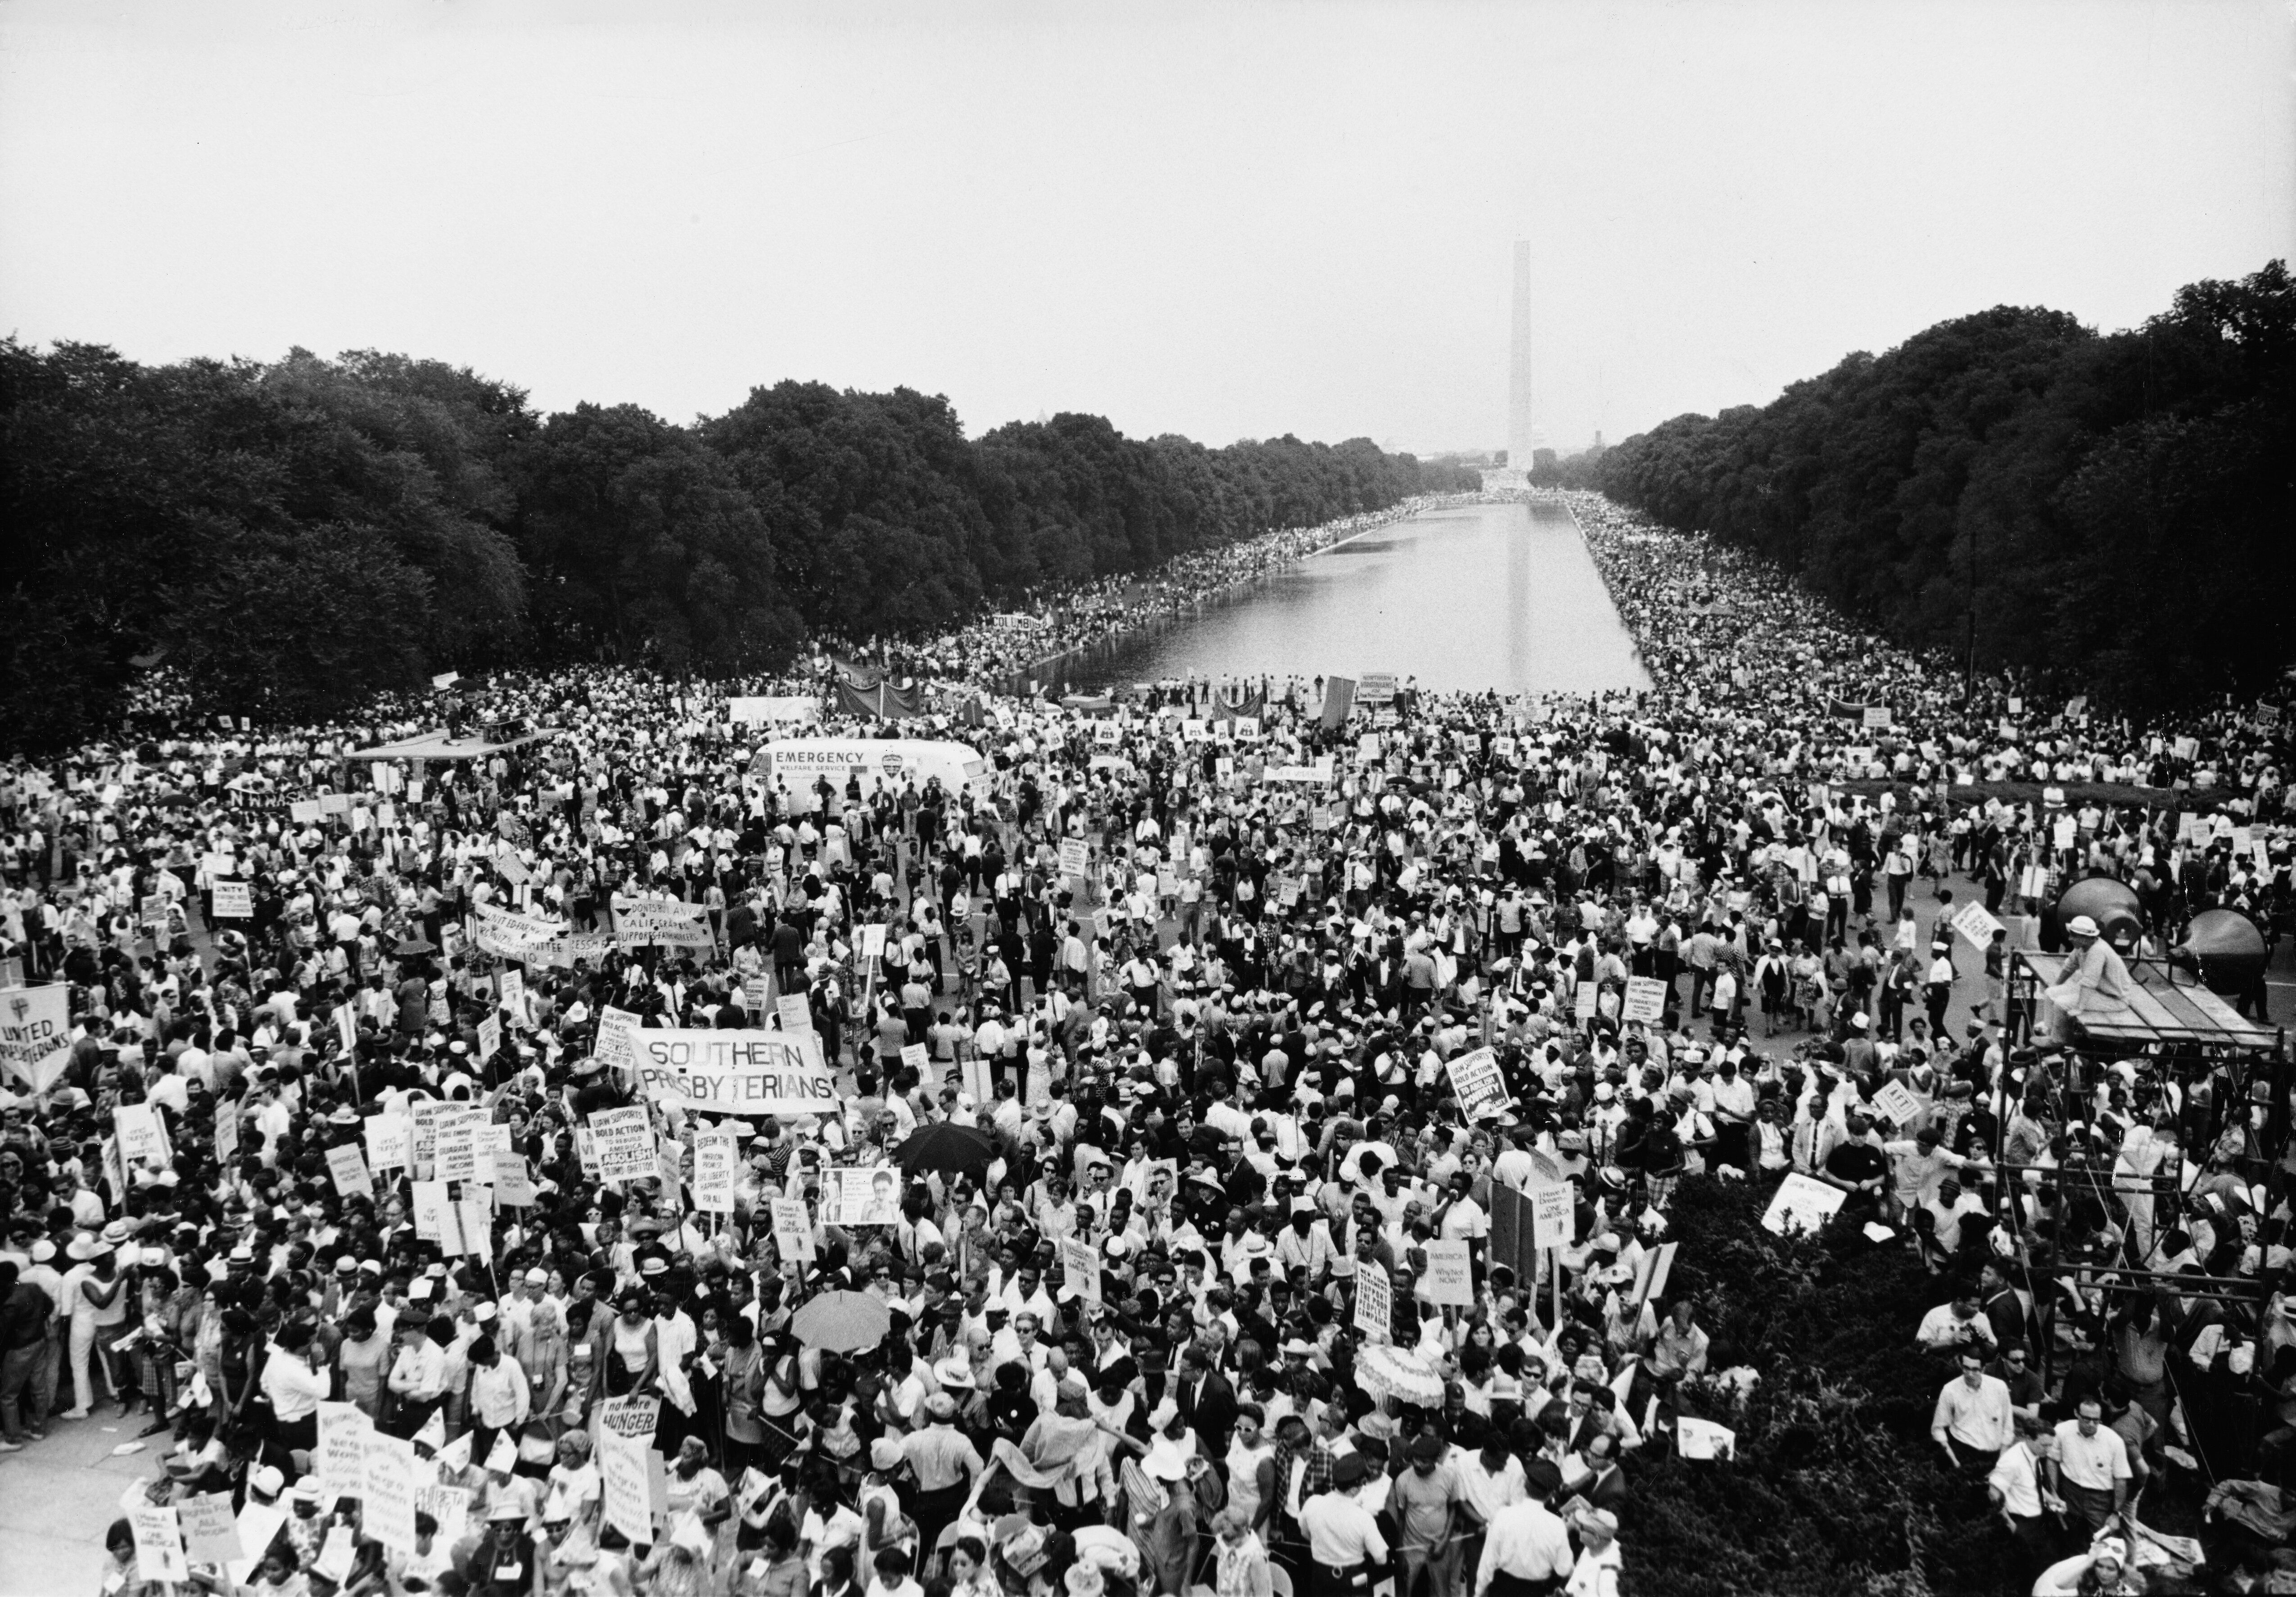 An estimated 50,000 people joined in support of the Poor People's Campaign in Washington, D.C., on June 19, 1968.